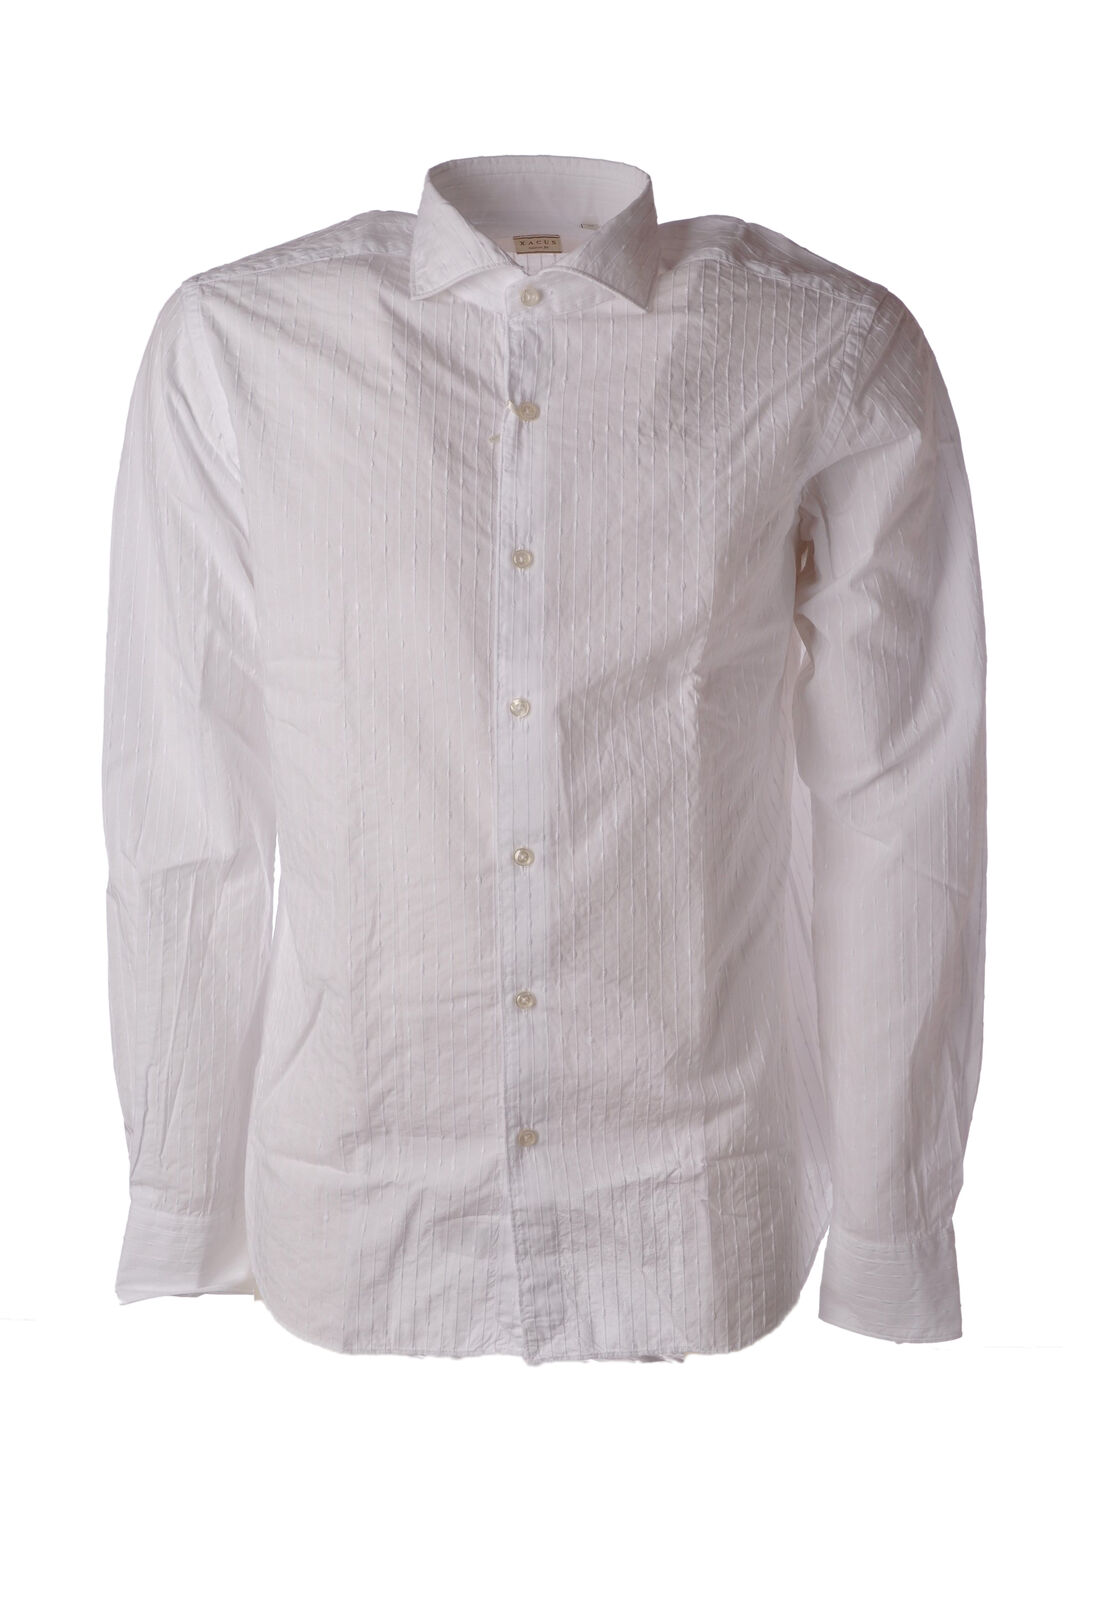 Xacus - bluesen-Shirt - Mann - white - 4885406E184845